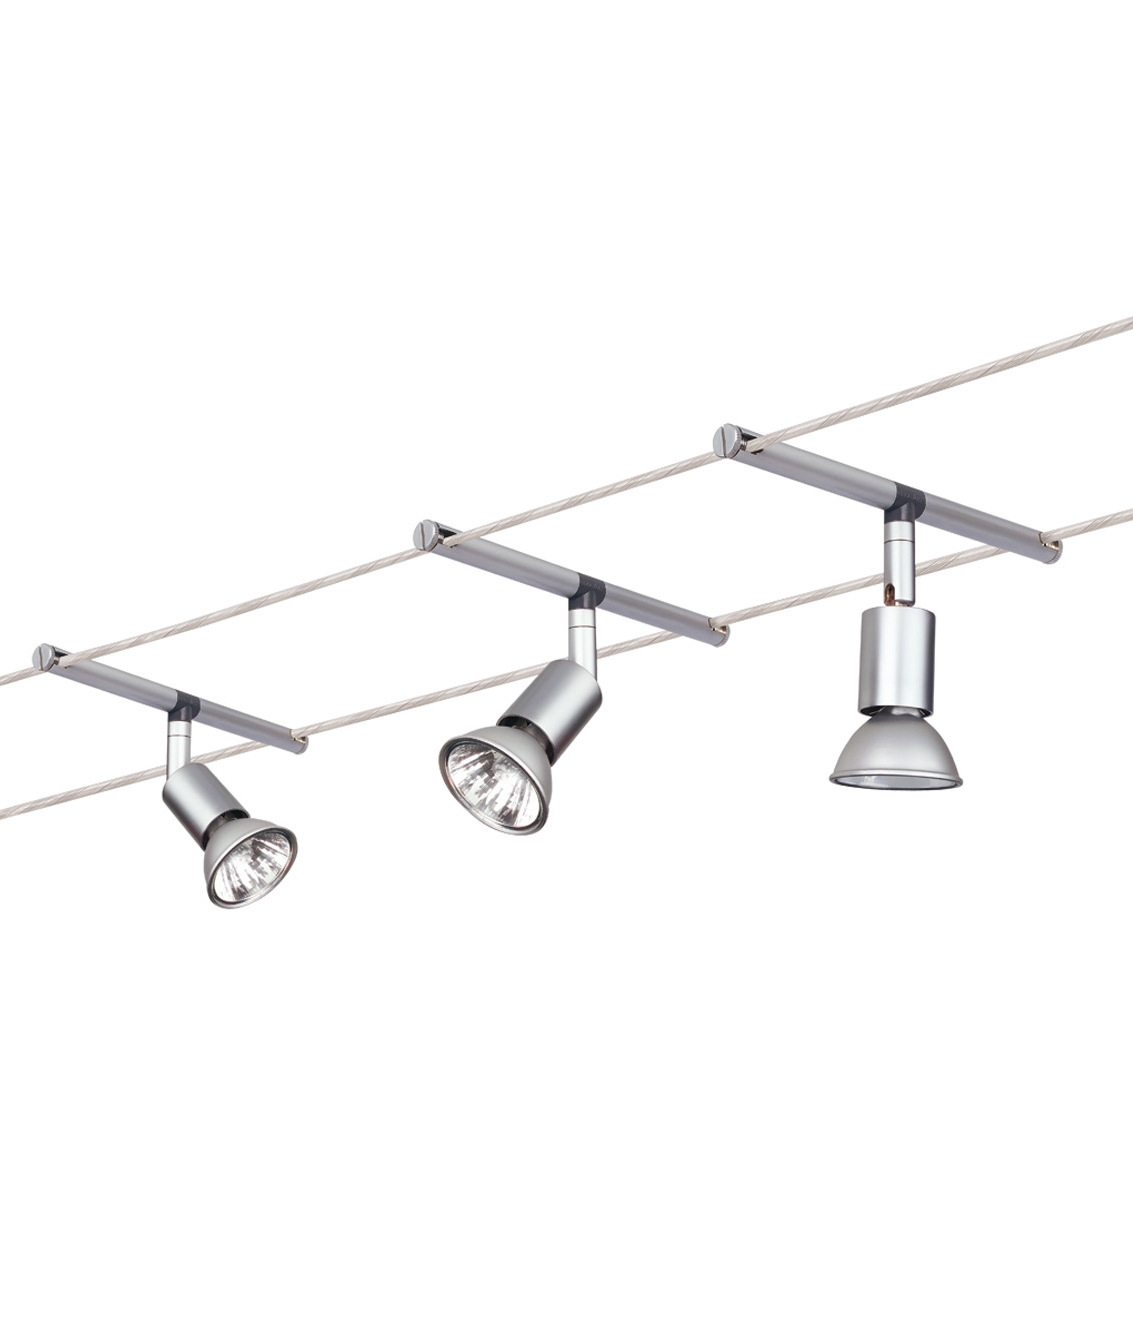 Different Types Of Track Lighting Fixtures To Install: Ready To Install Tension Wire System